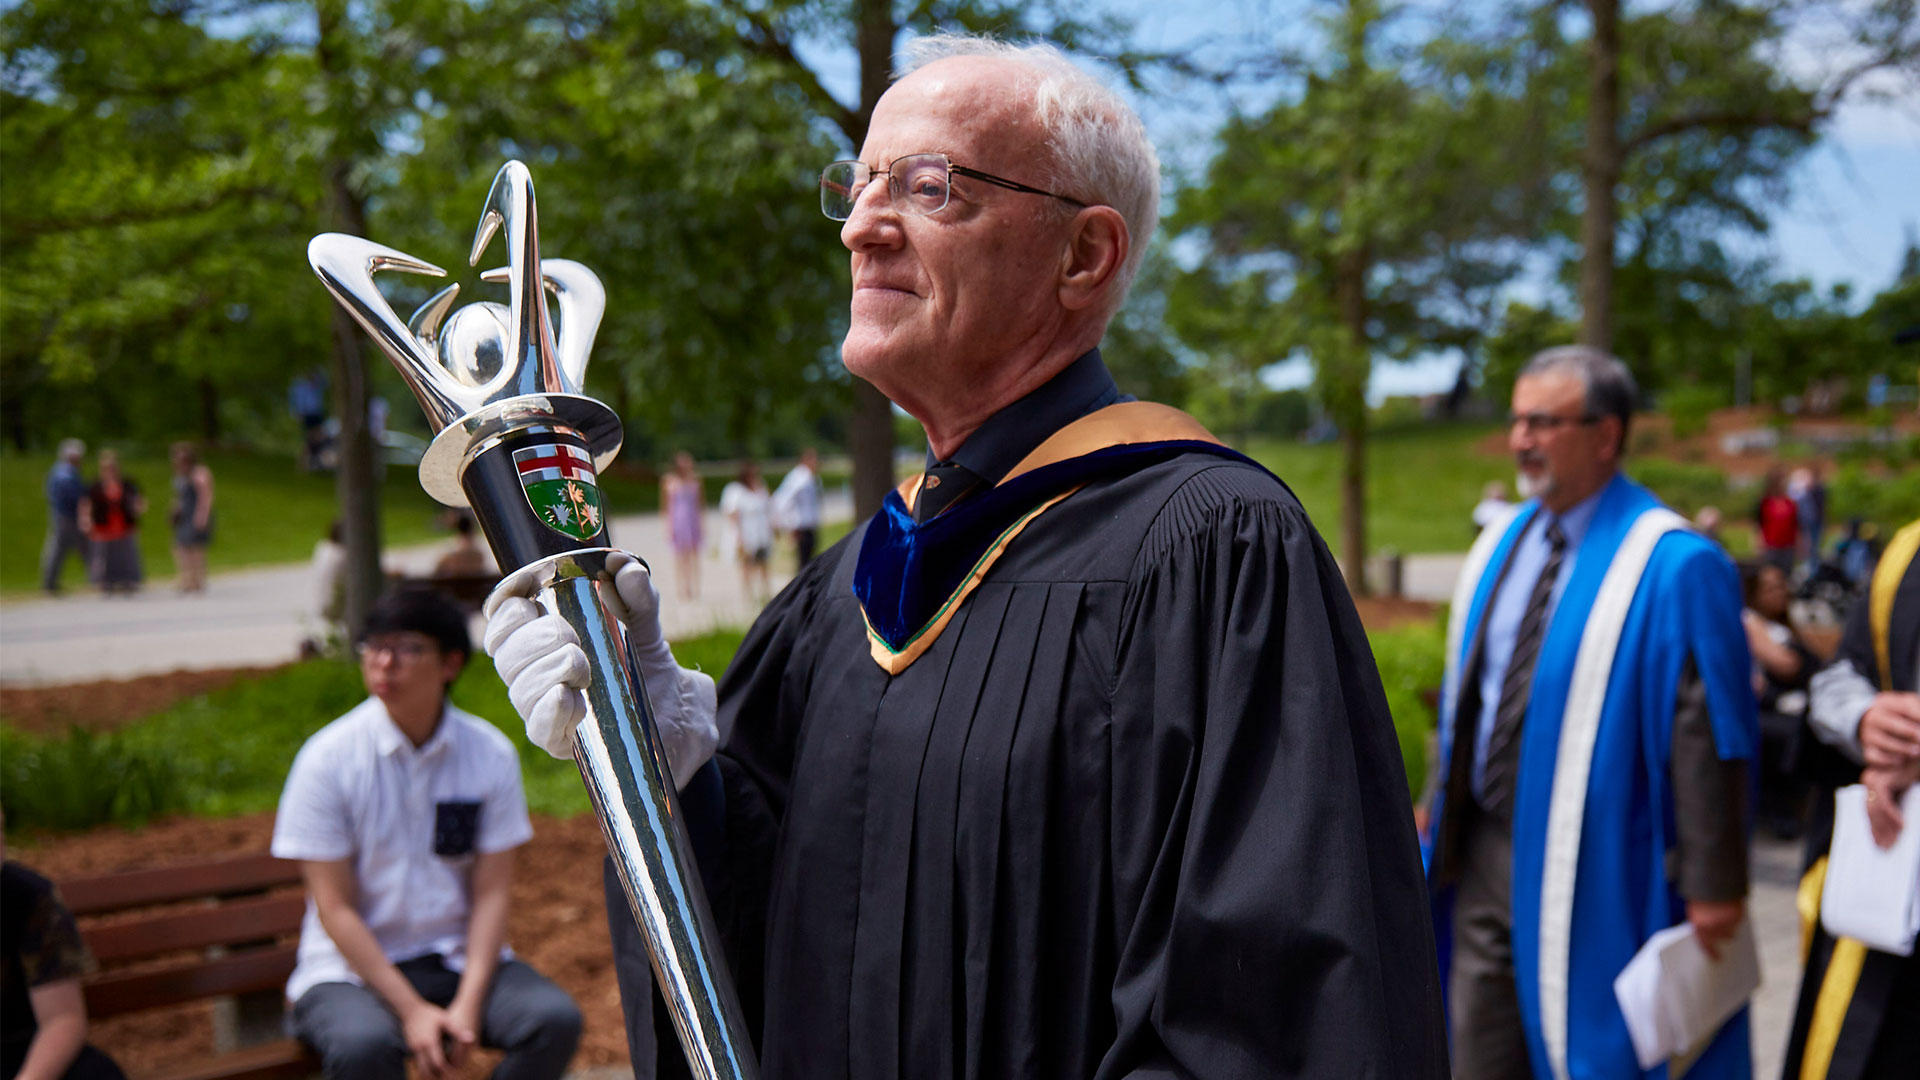 John North at convocation carrying the UWaterloo ceremonial mace